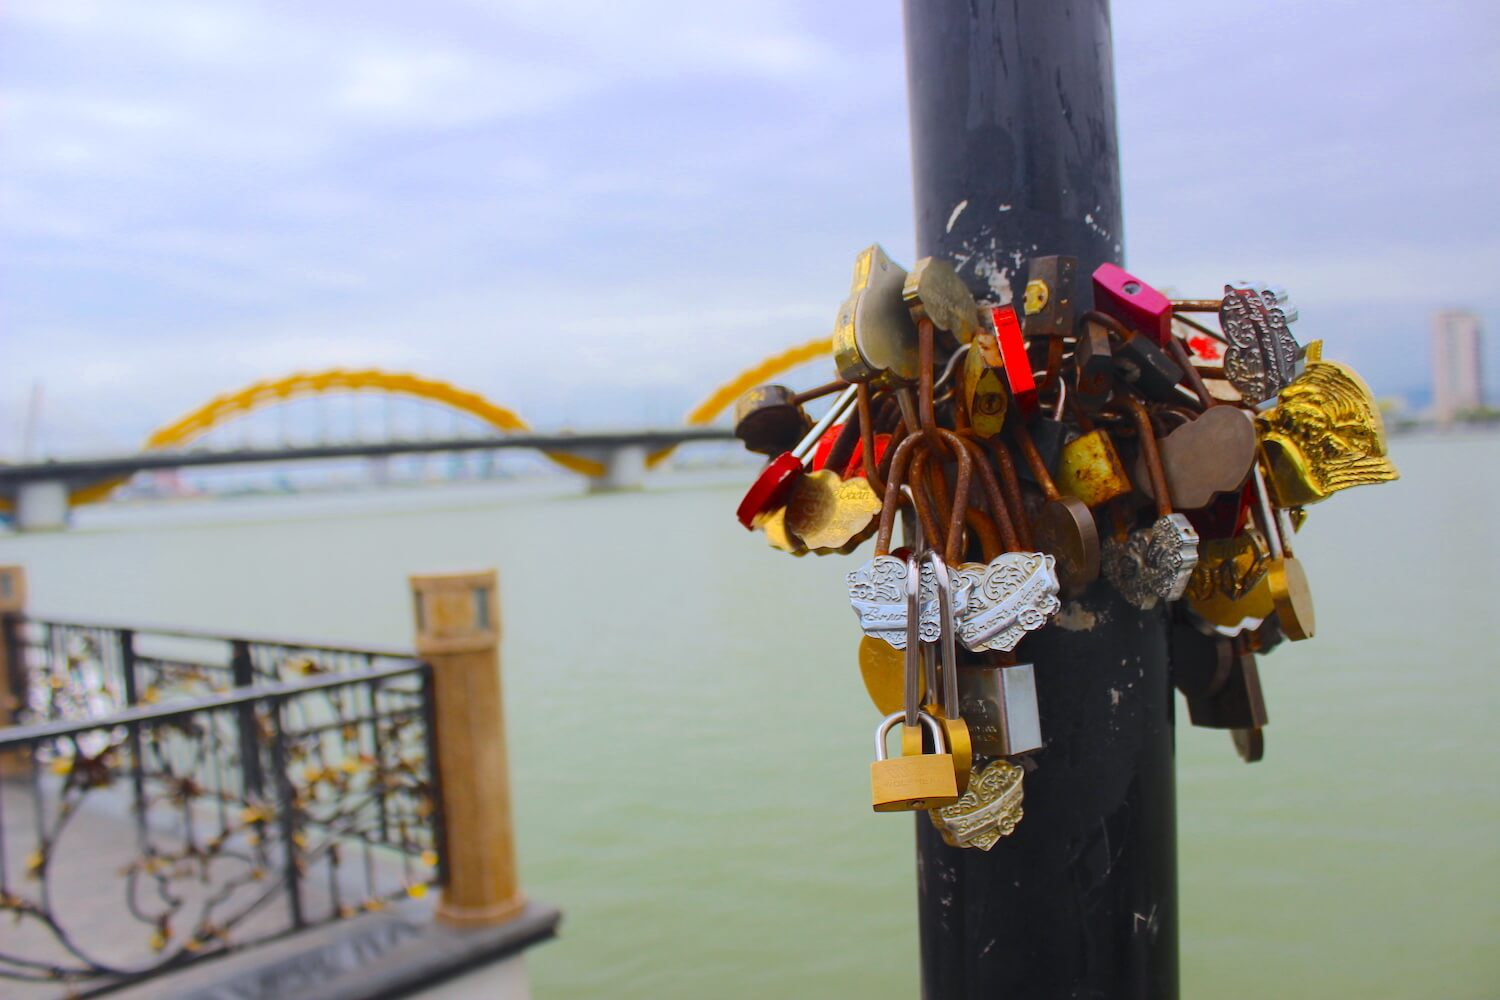 da nang love lock bridge locks